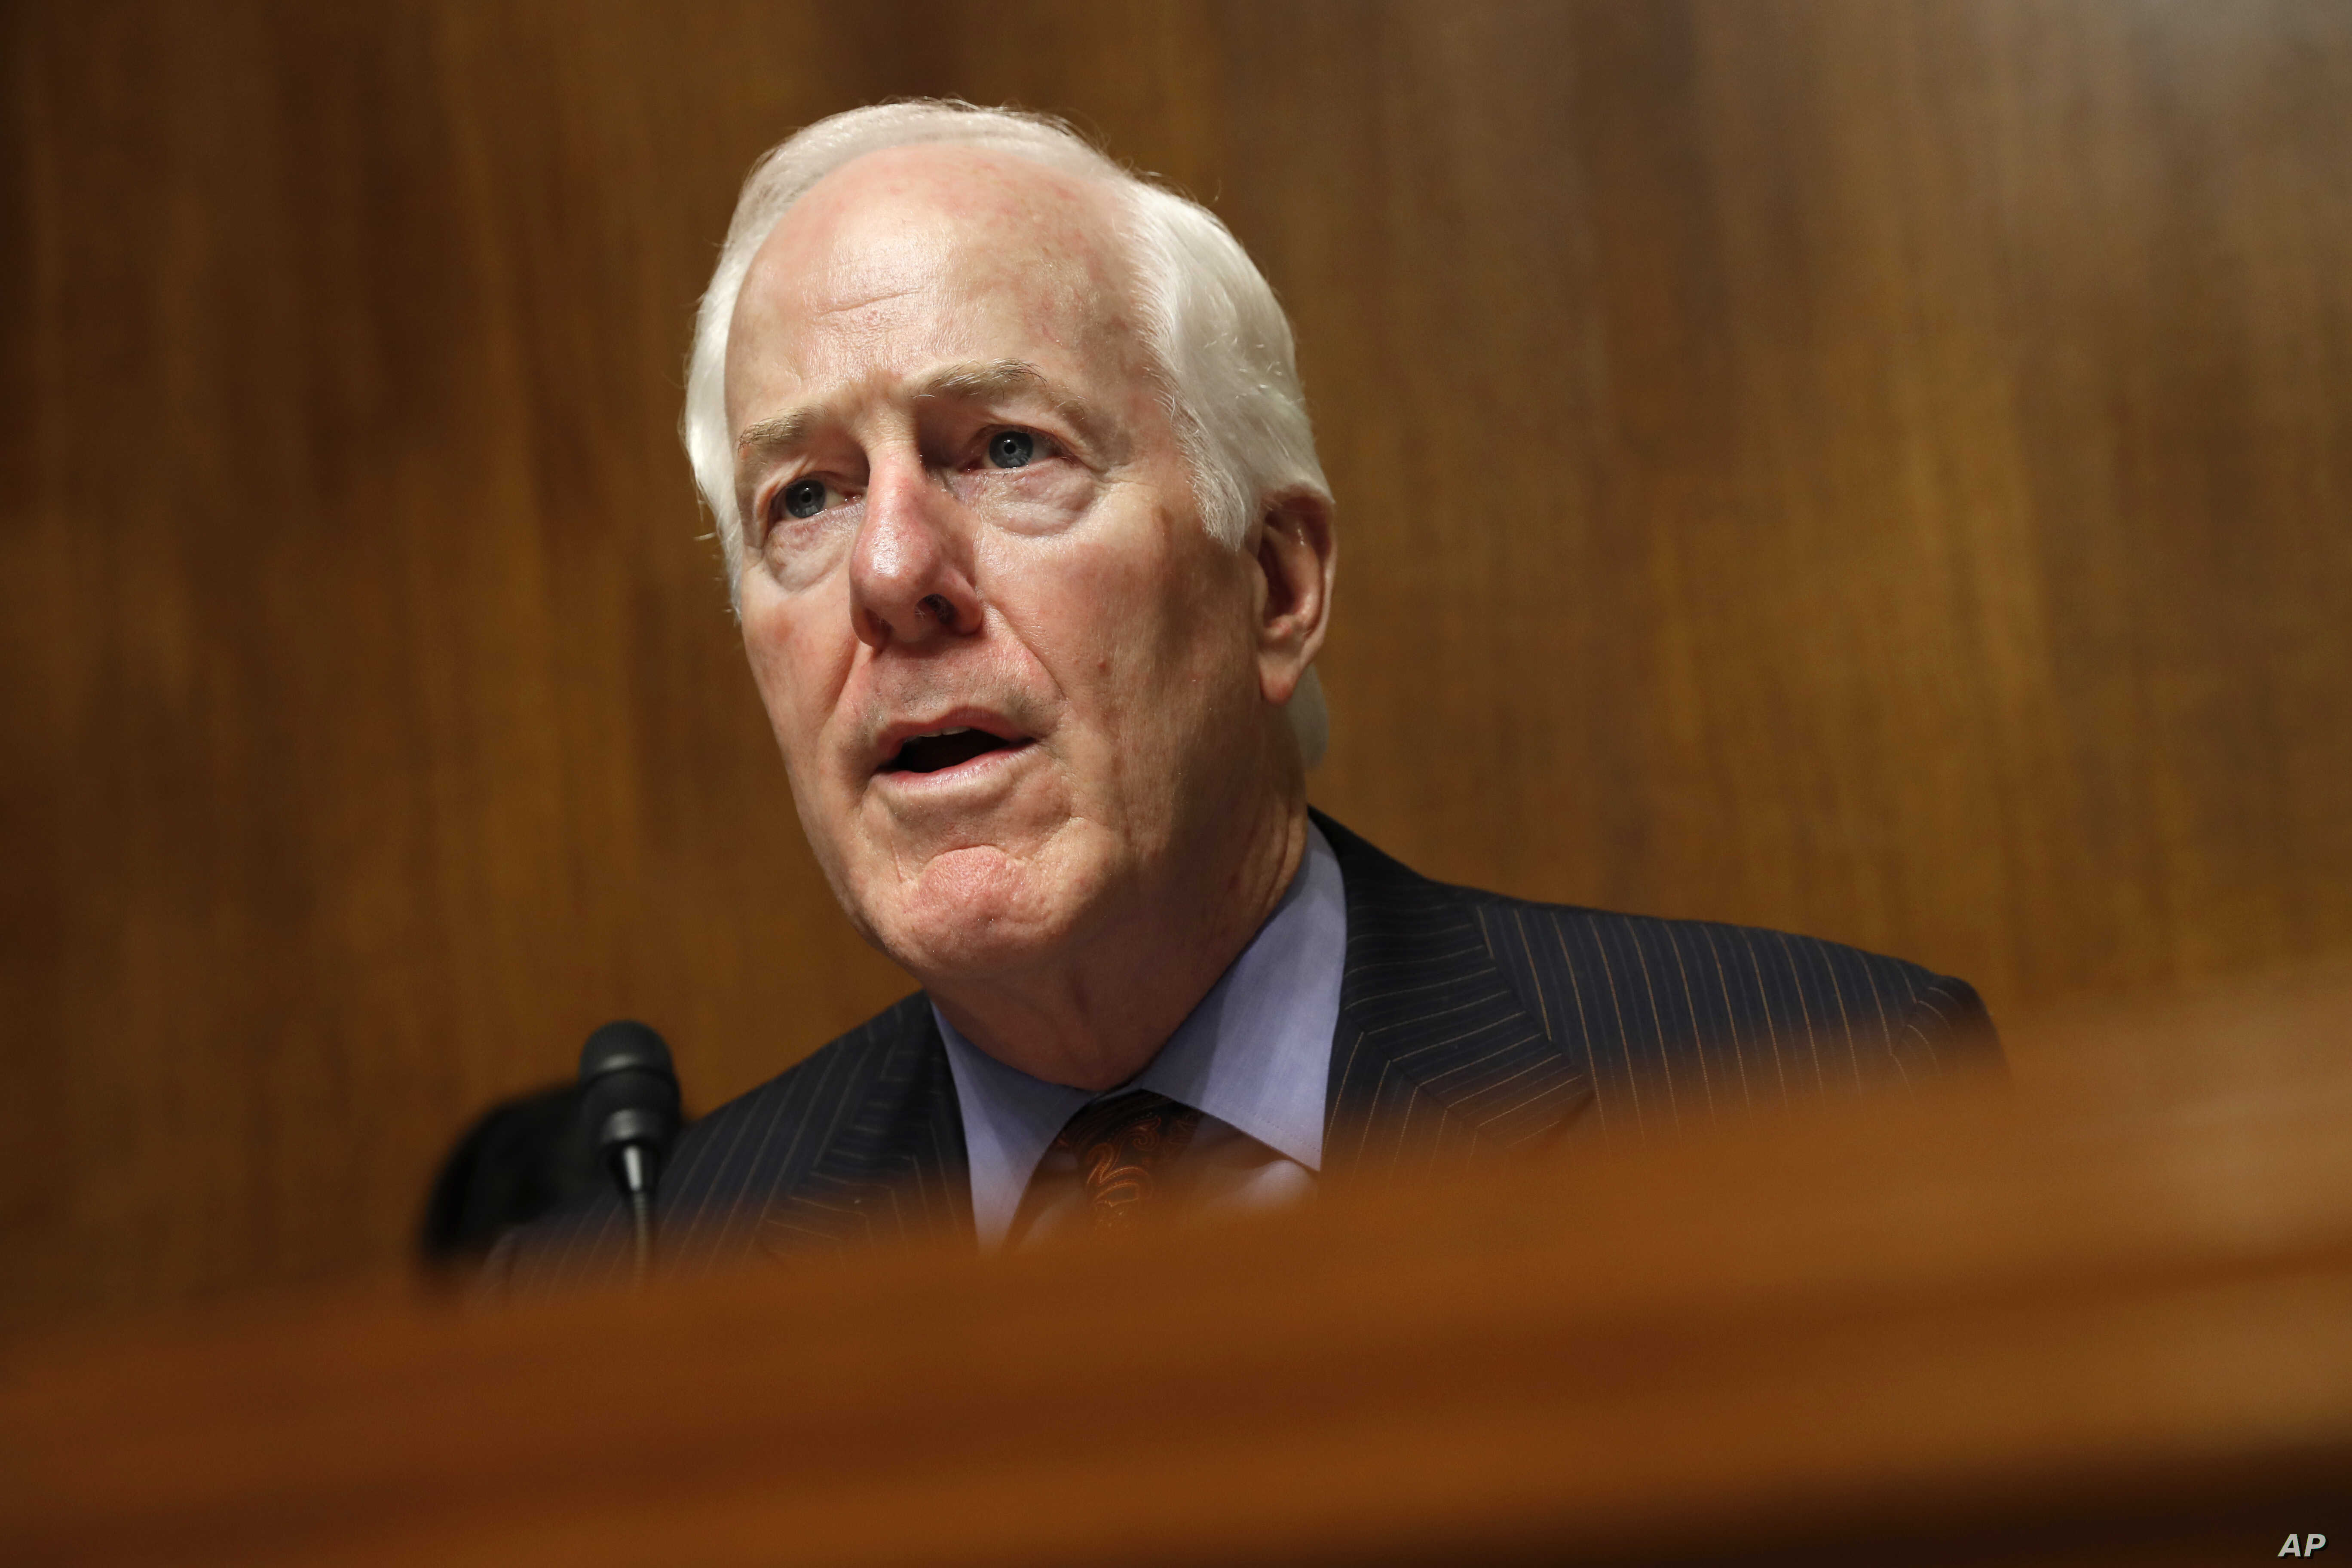 Senate Majority Whip Sen. John Cornyn, R-Texas, Chair of the Senate Judiciary Border Security and Immigration Subcommittee, speaks during a hearing about the border, May 8, 2019, on Capitol Hill.